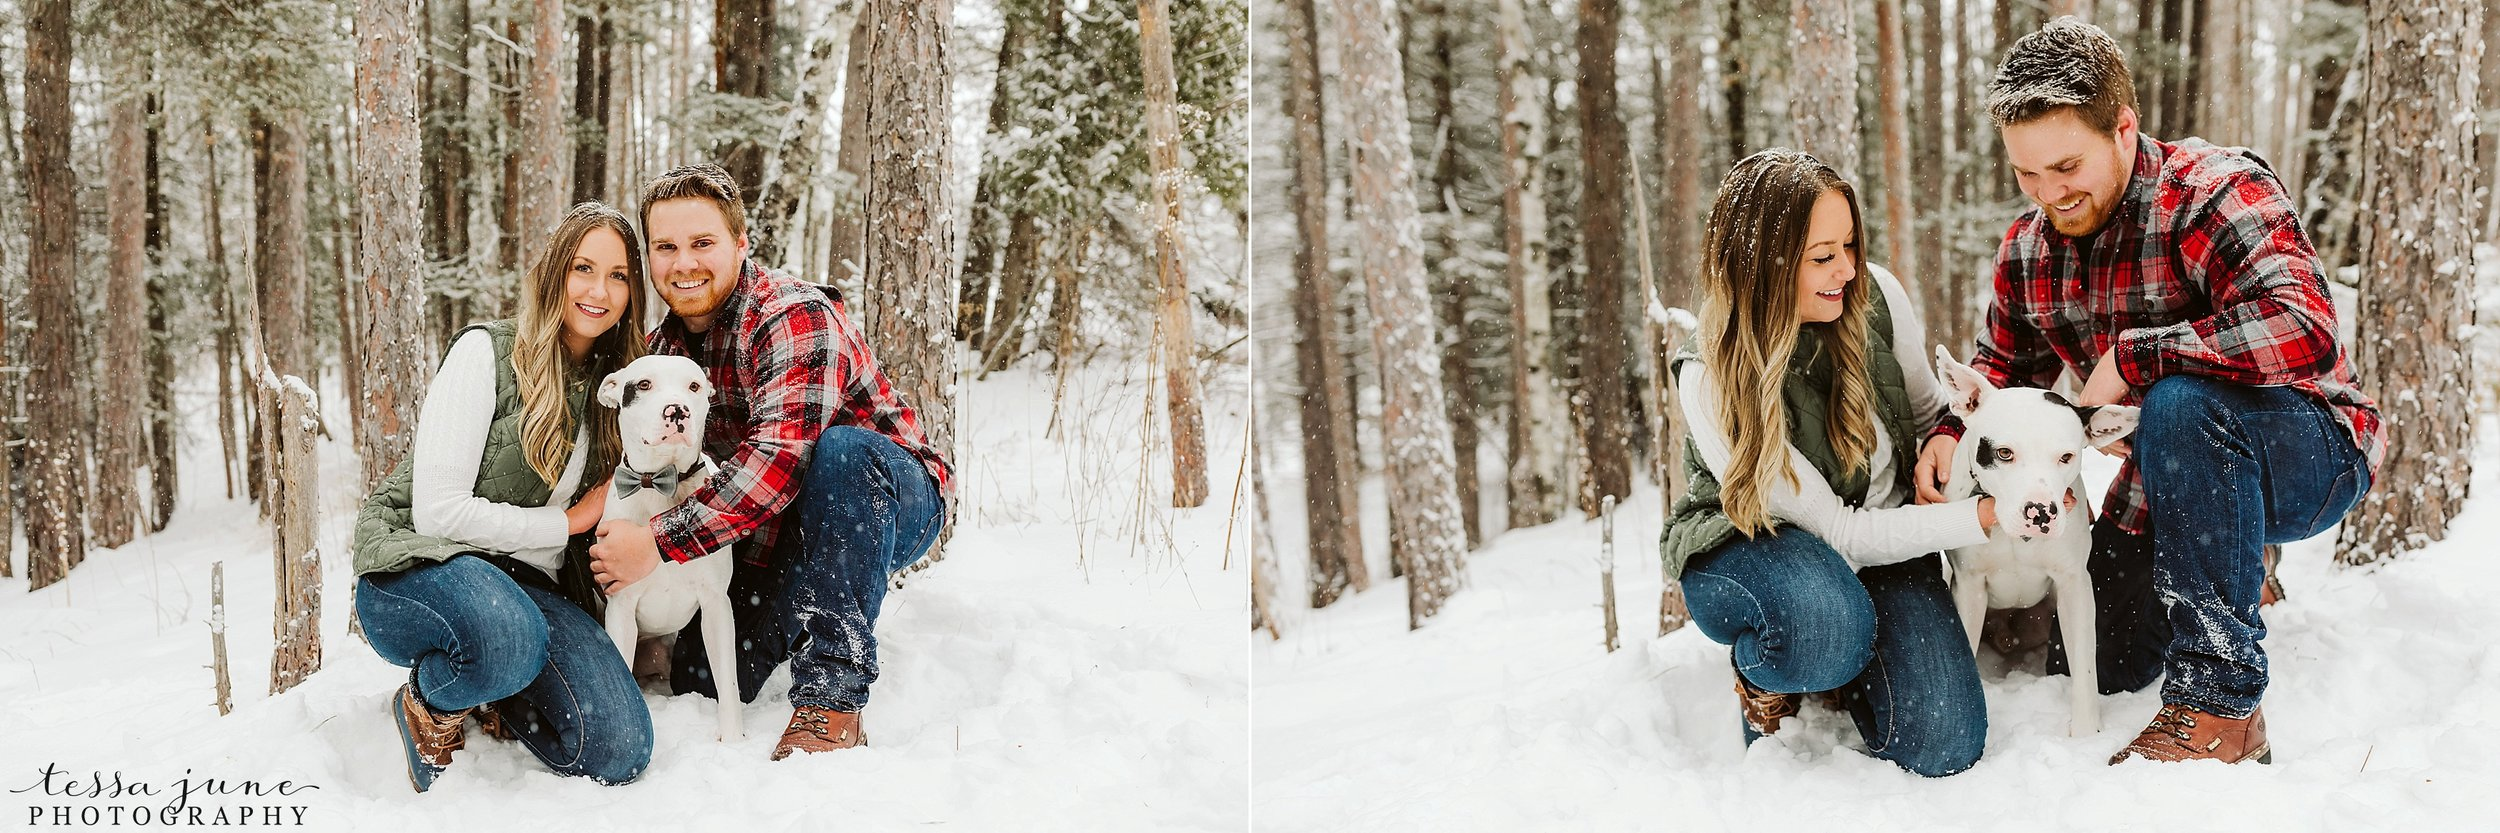 duluth-winter-engagement-forest-photos-during-snow-storm-34.jpg